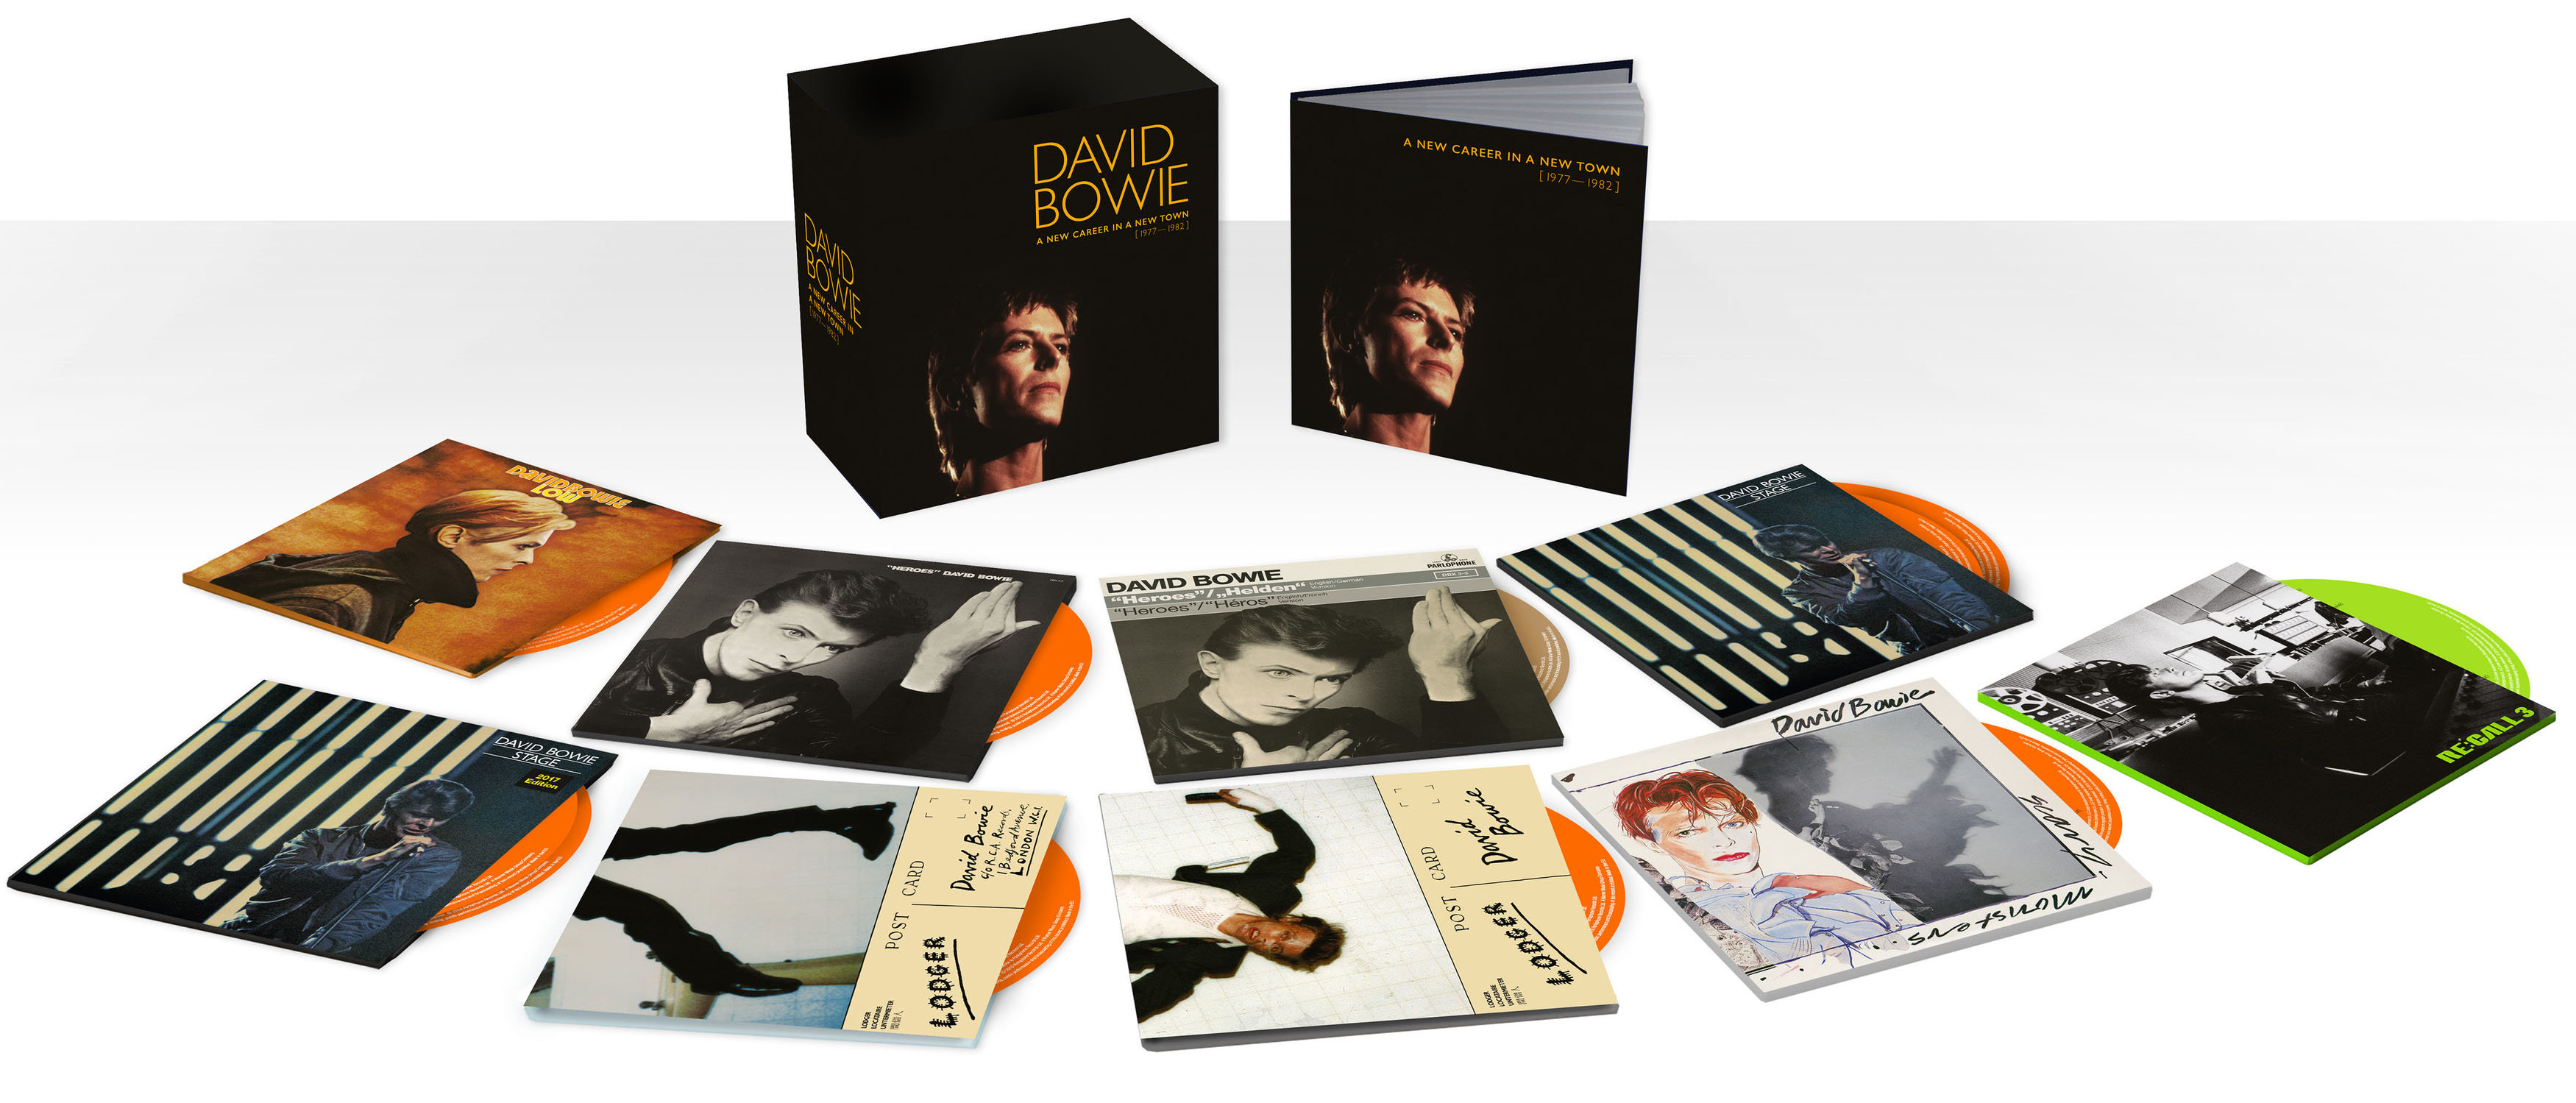 David Bowie : A New Carreer In A New Town (1977 - 1982)